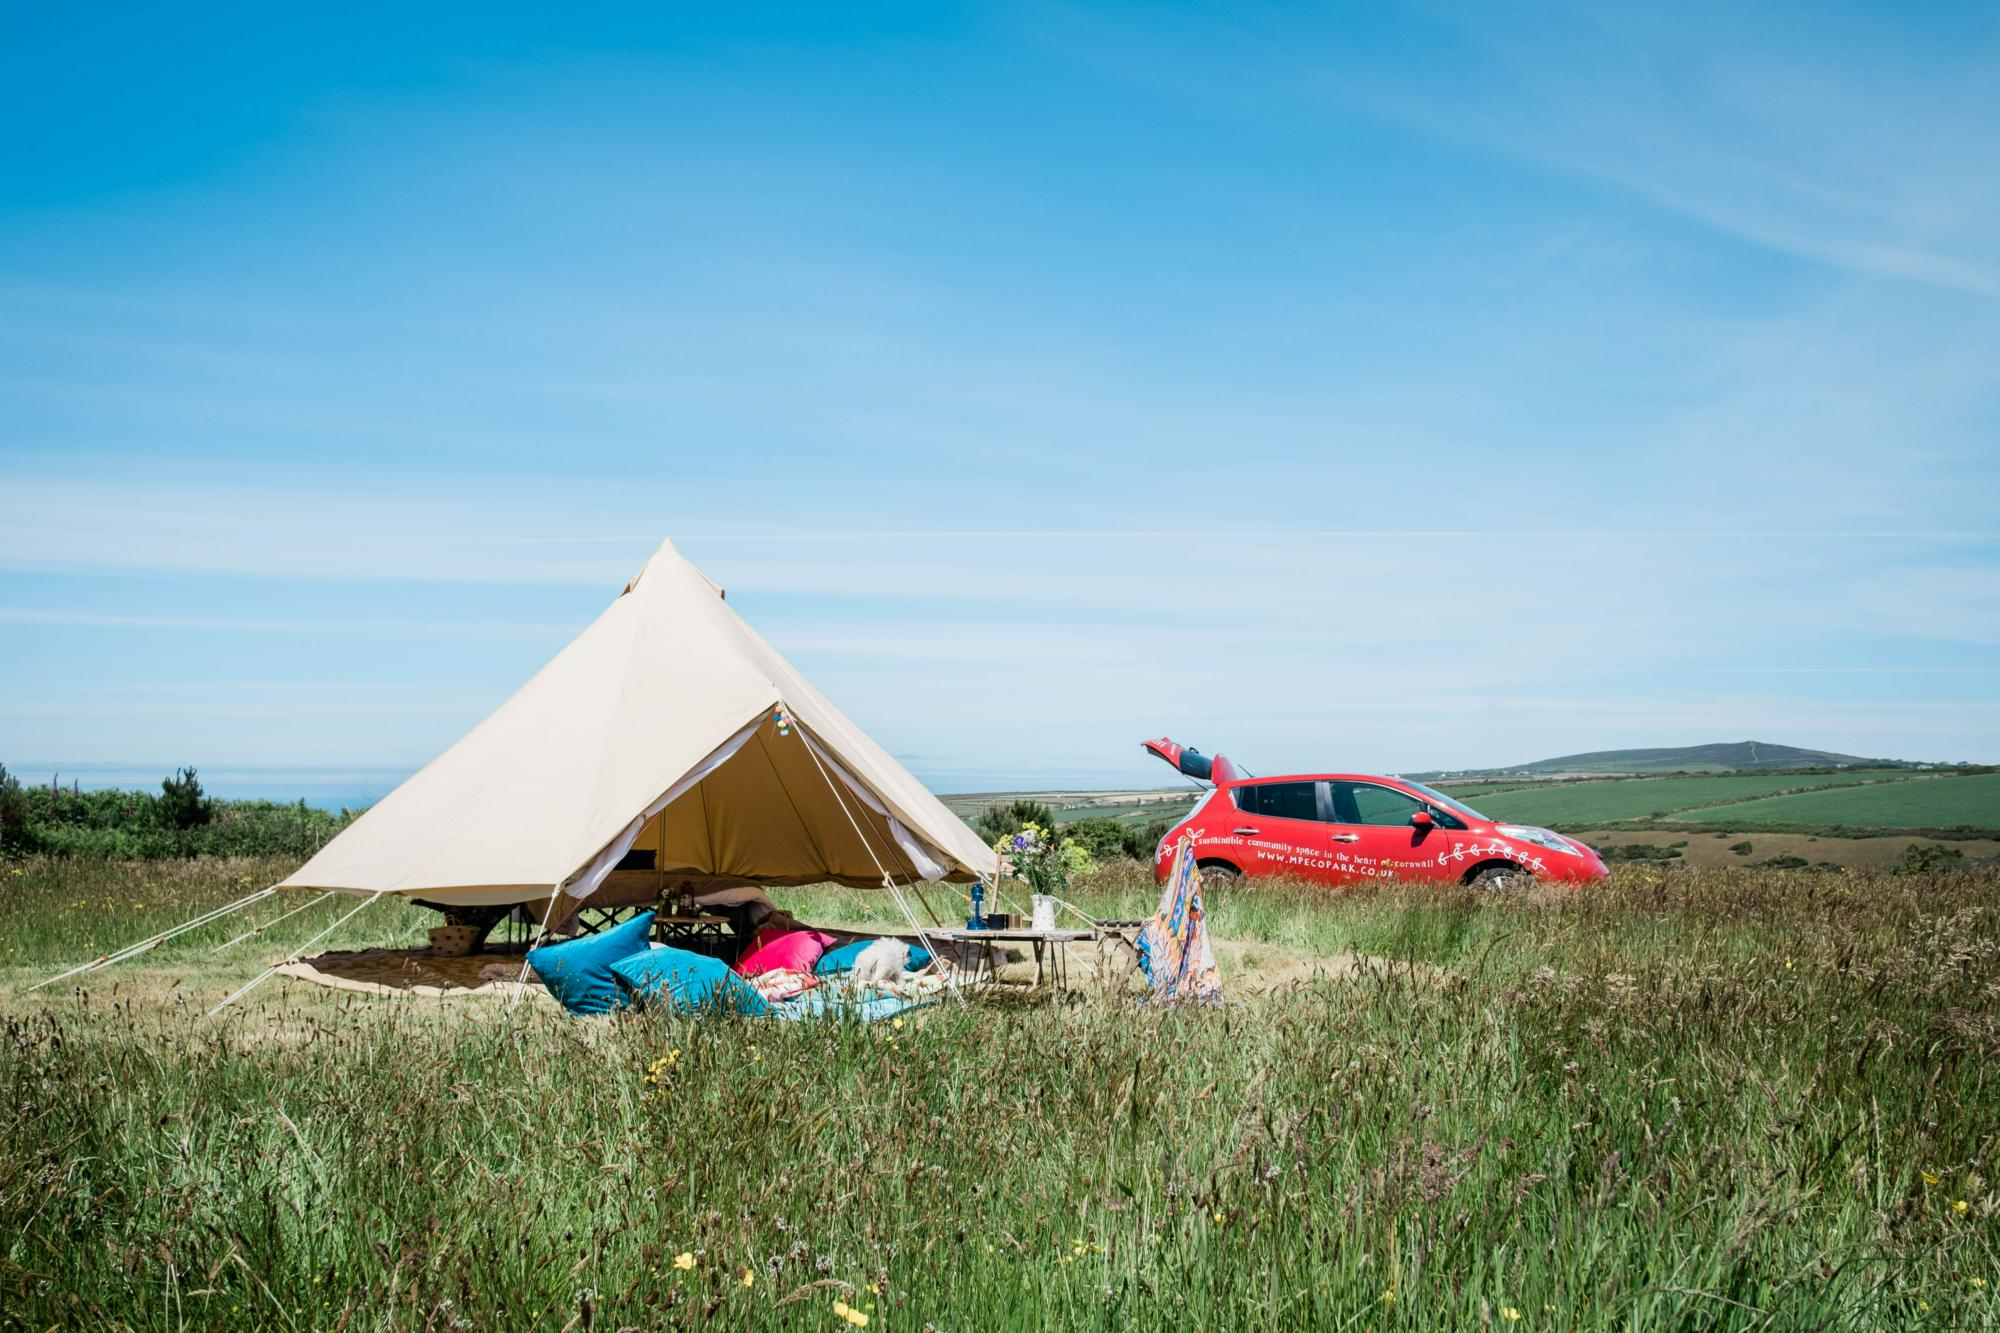 Campsites in Porthtowan – Cool Camping